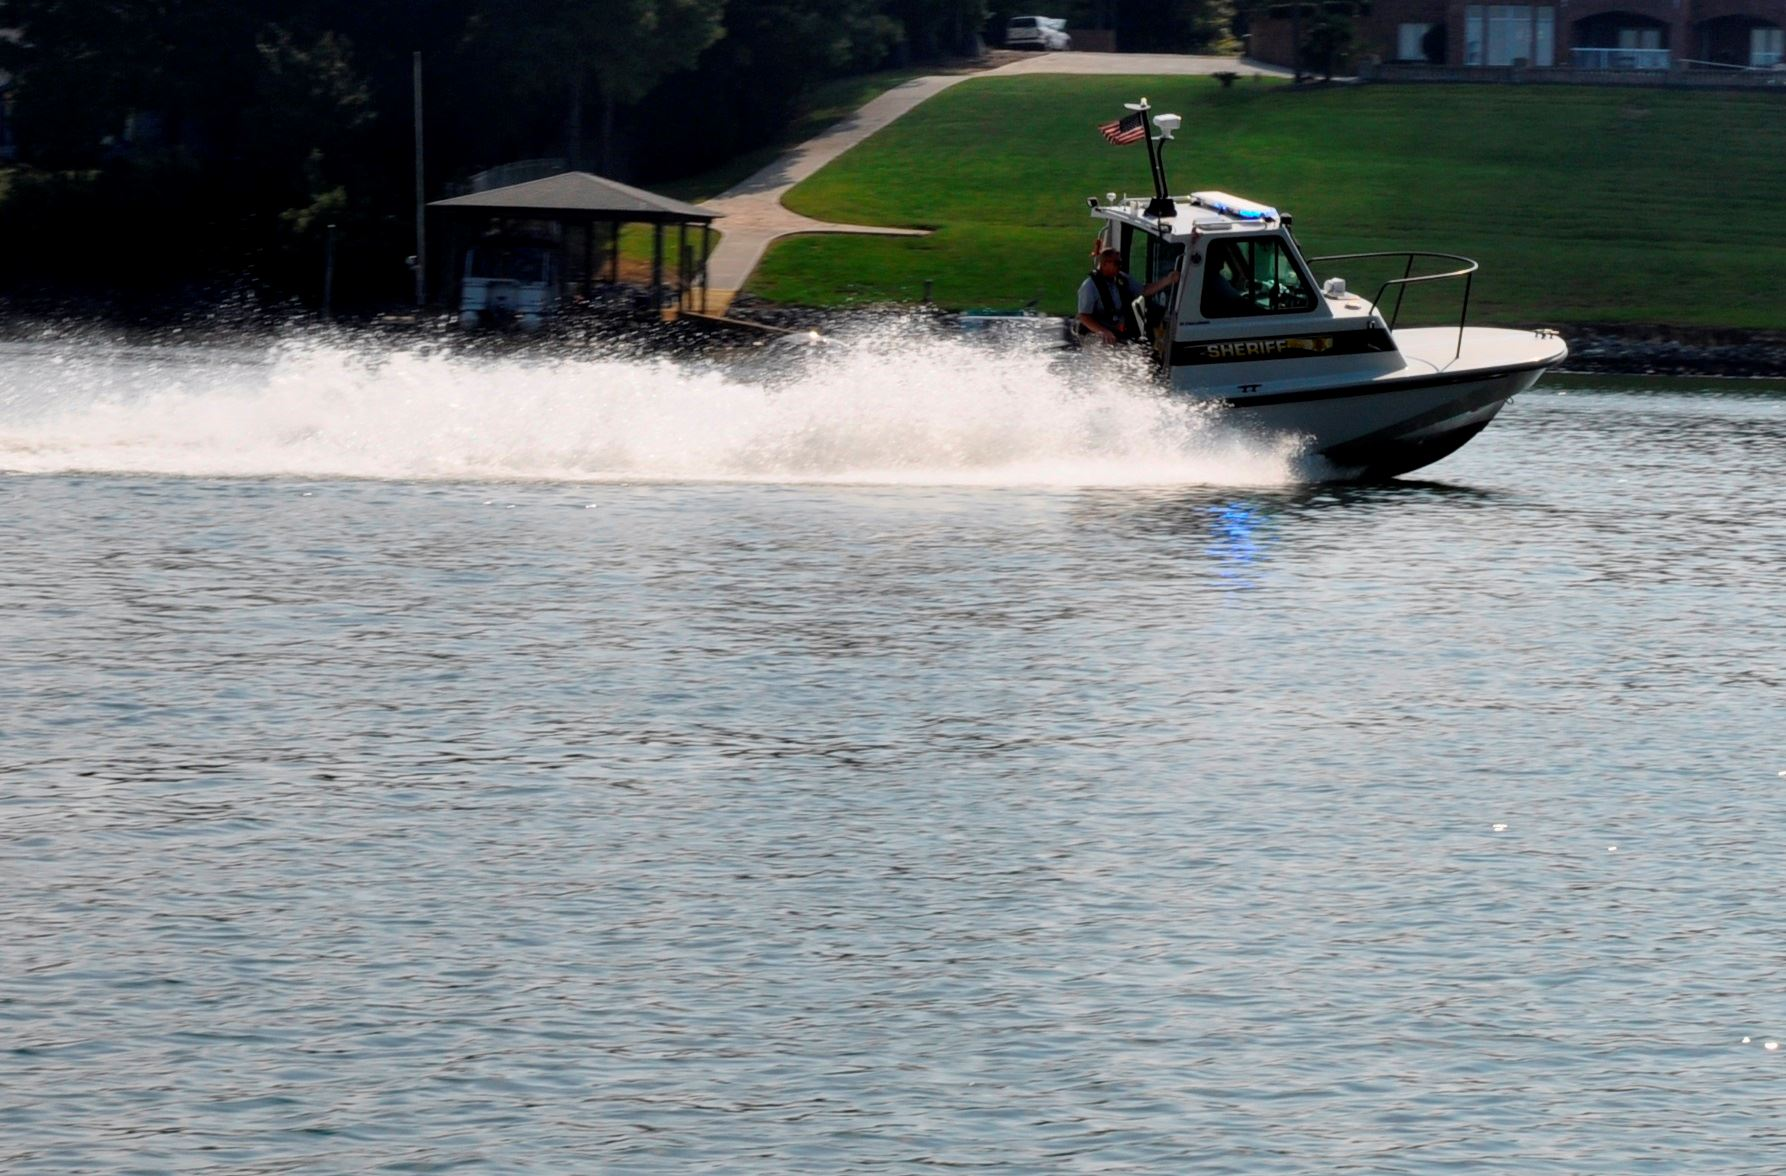 The Lake Enforcement Unit boat on Lake Wylie making a turn